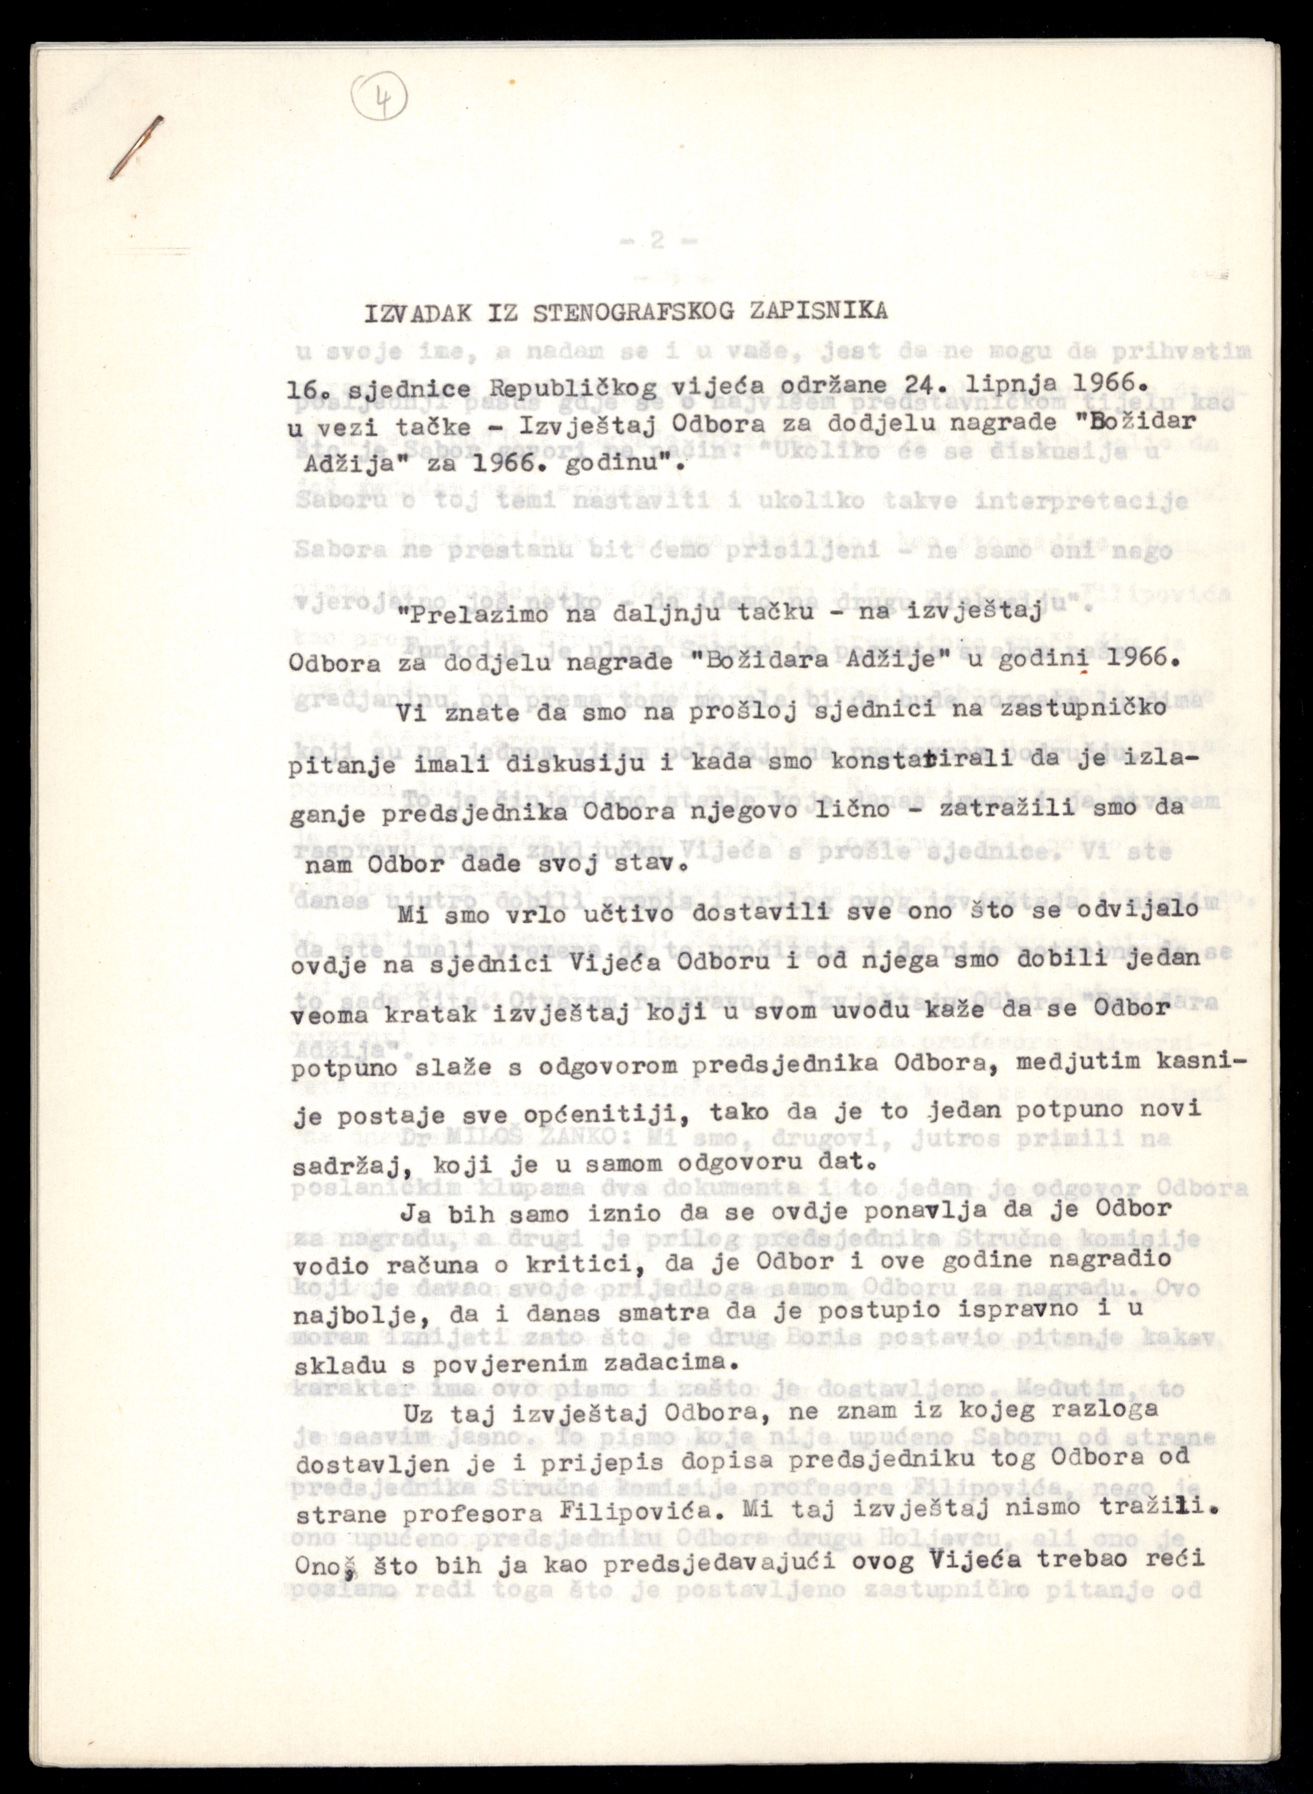 "HR-HDA-1220.3.2.1. League of Communisis of Croatia Central Committee, Executive Committee, Commission for the examination of nationalist phenomena in the Emigrant Foundation of Croatia, Excerpt from the Stenographic Record of the 16th Session of the Republic Council of the Socialist Republic of Croatia Parliament, 24 June 1966 - Report of the ""Božidar Adžija"" Award Committee for 1966"